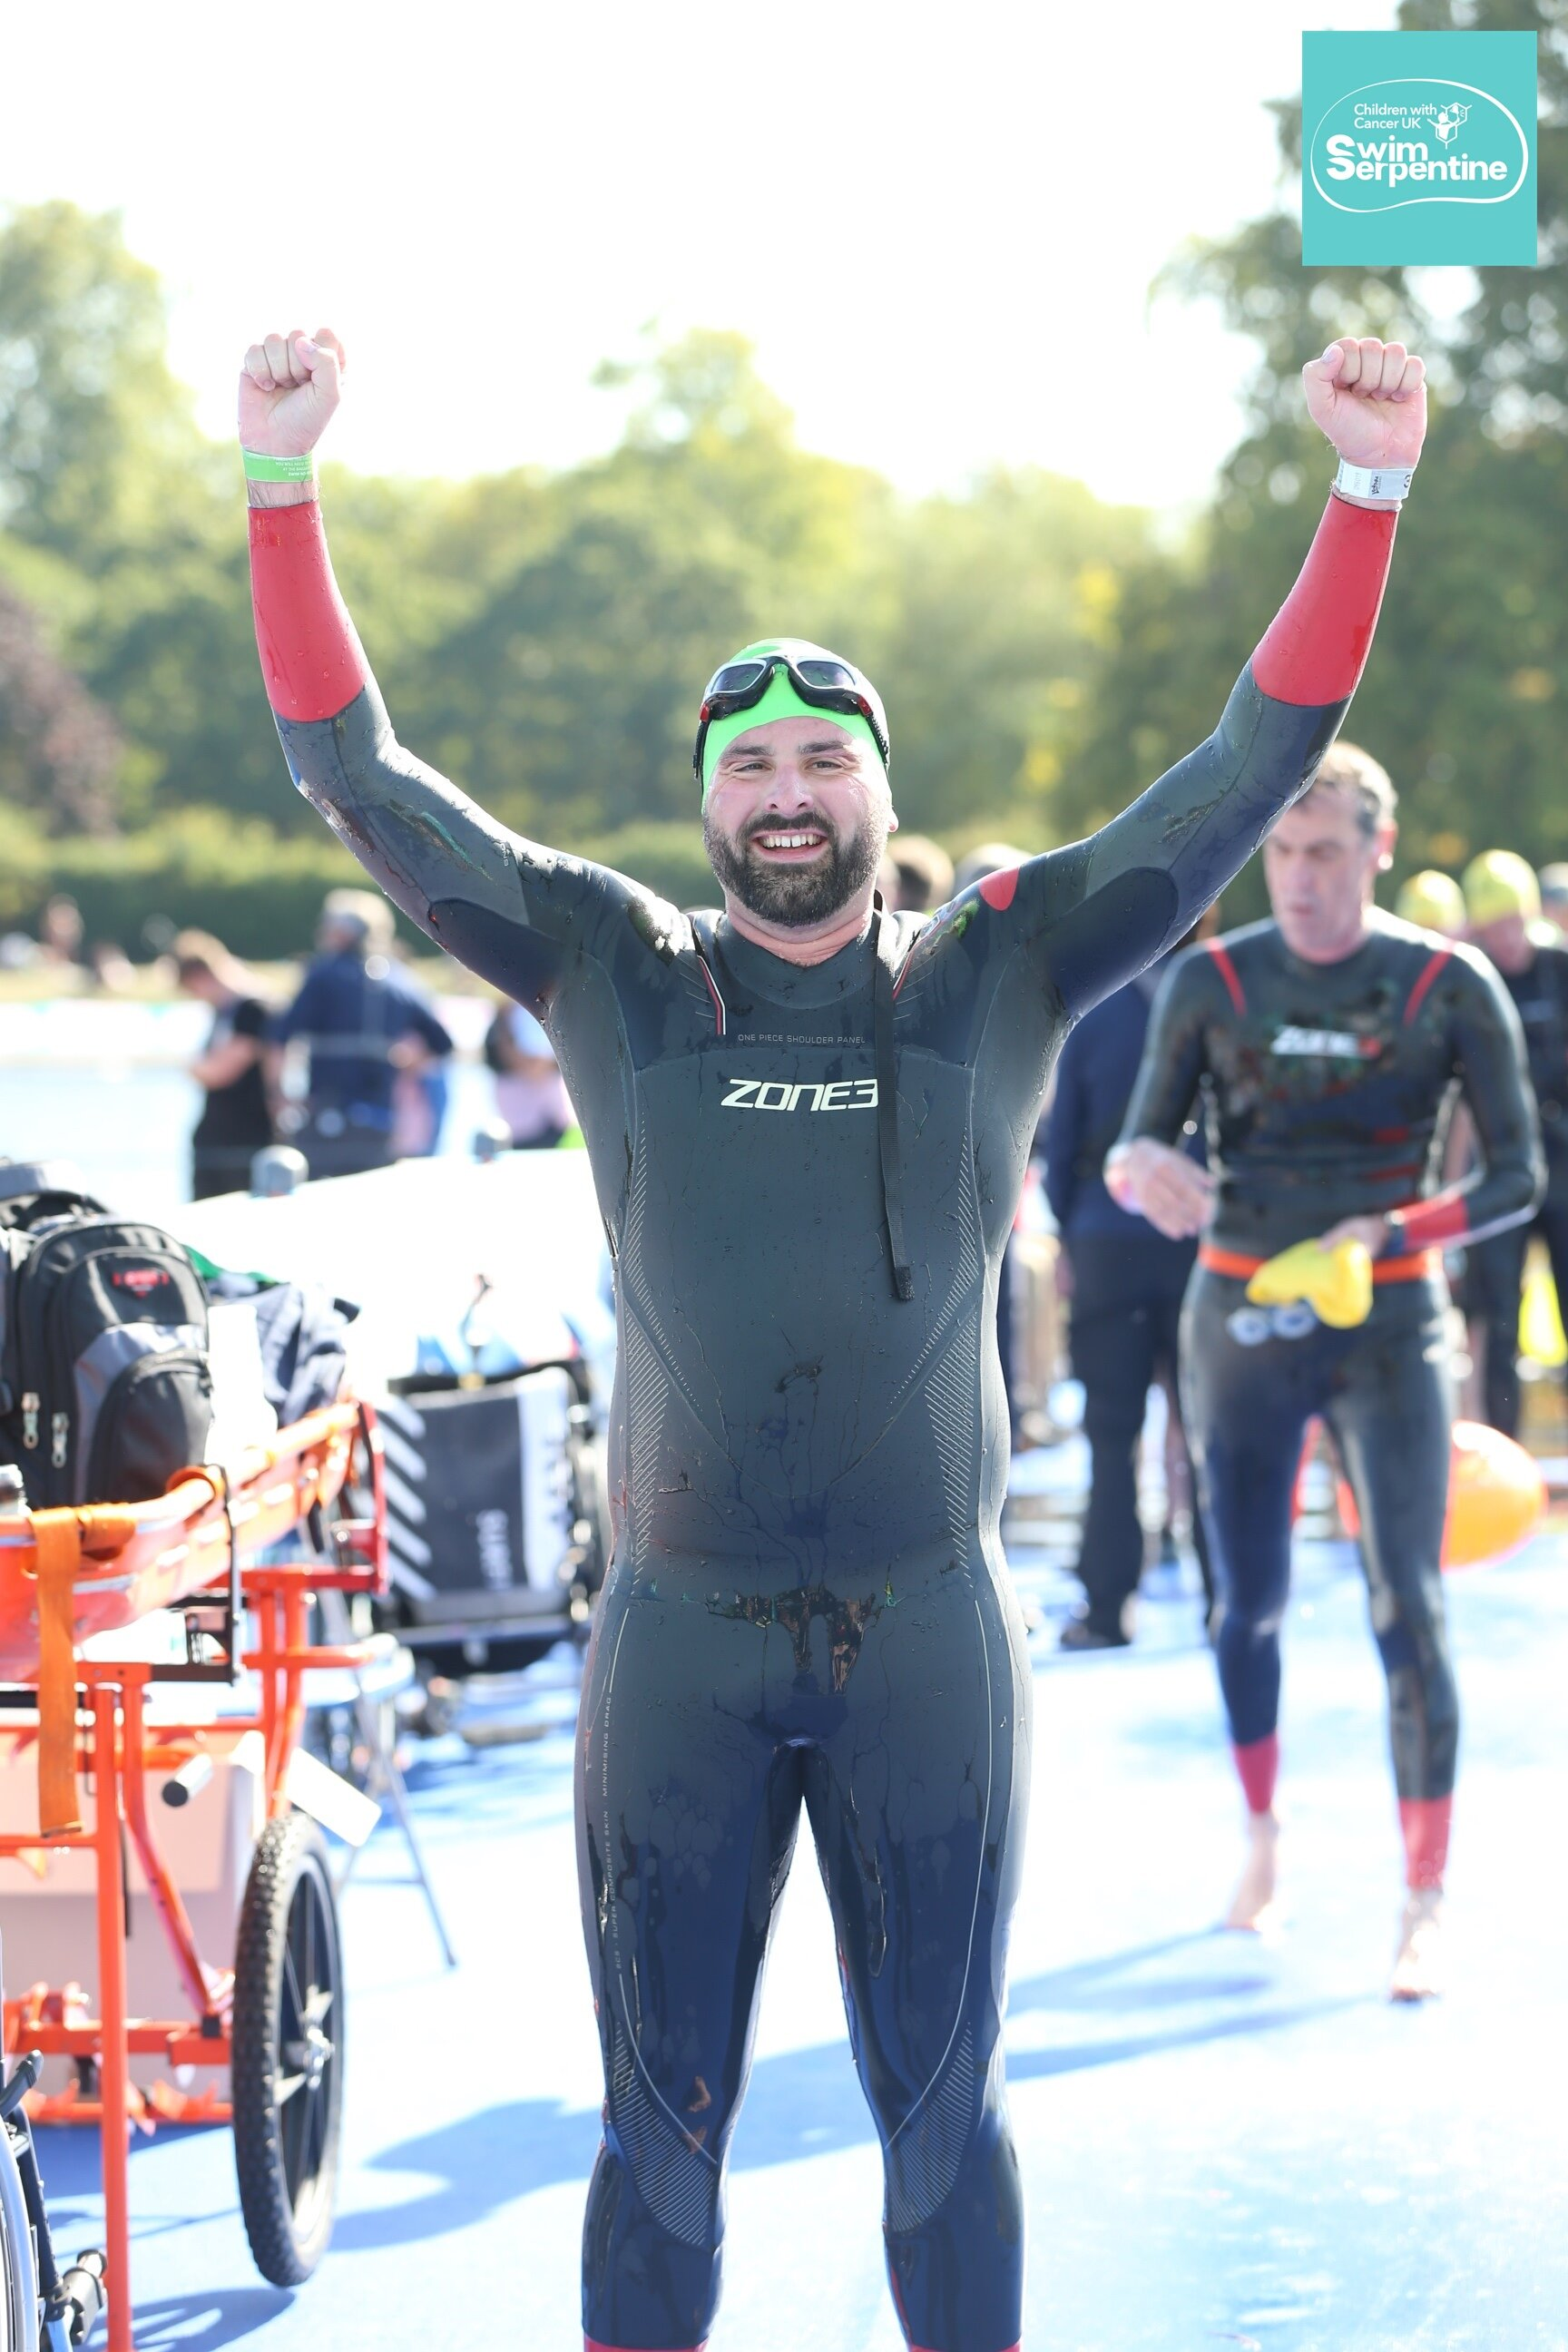 Joe completing the Swim Serpentine and also the London Classics challenge.